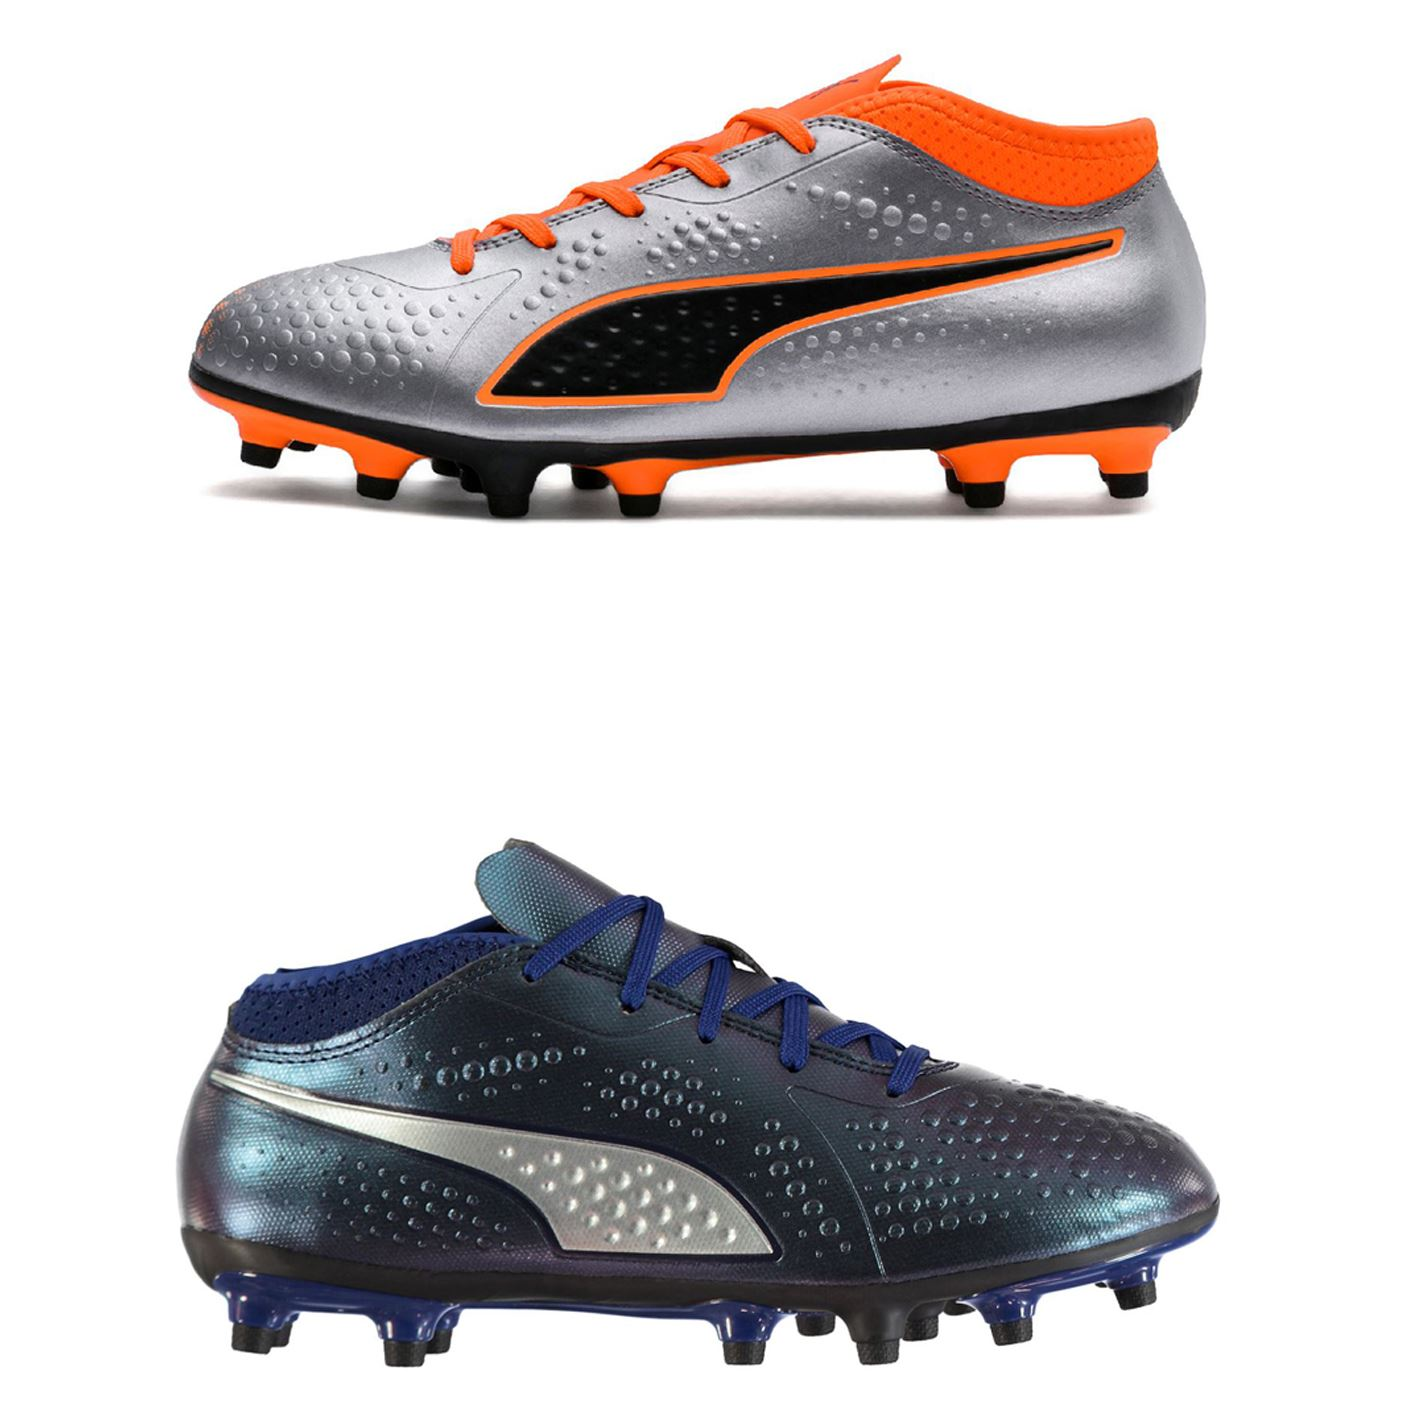 ... Puma One 4 FG Firm Ground Football Boots Childs Soccer Shoes Cleats ... 809154997